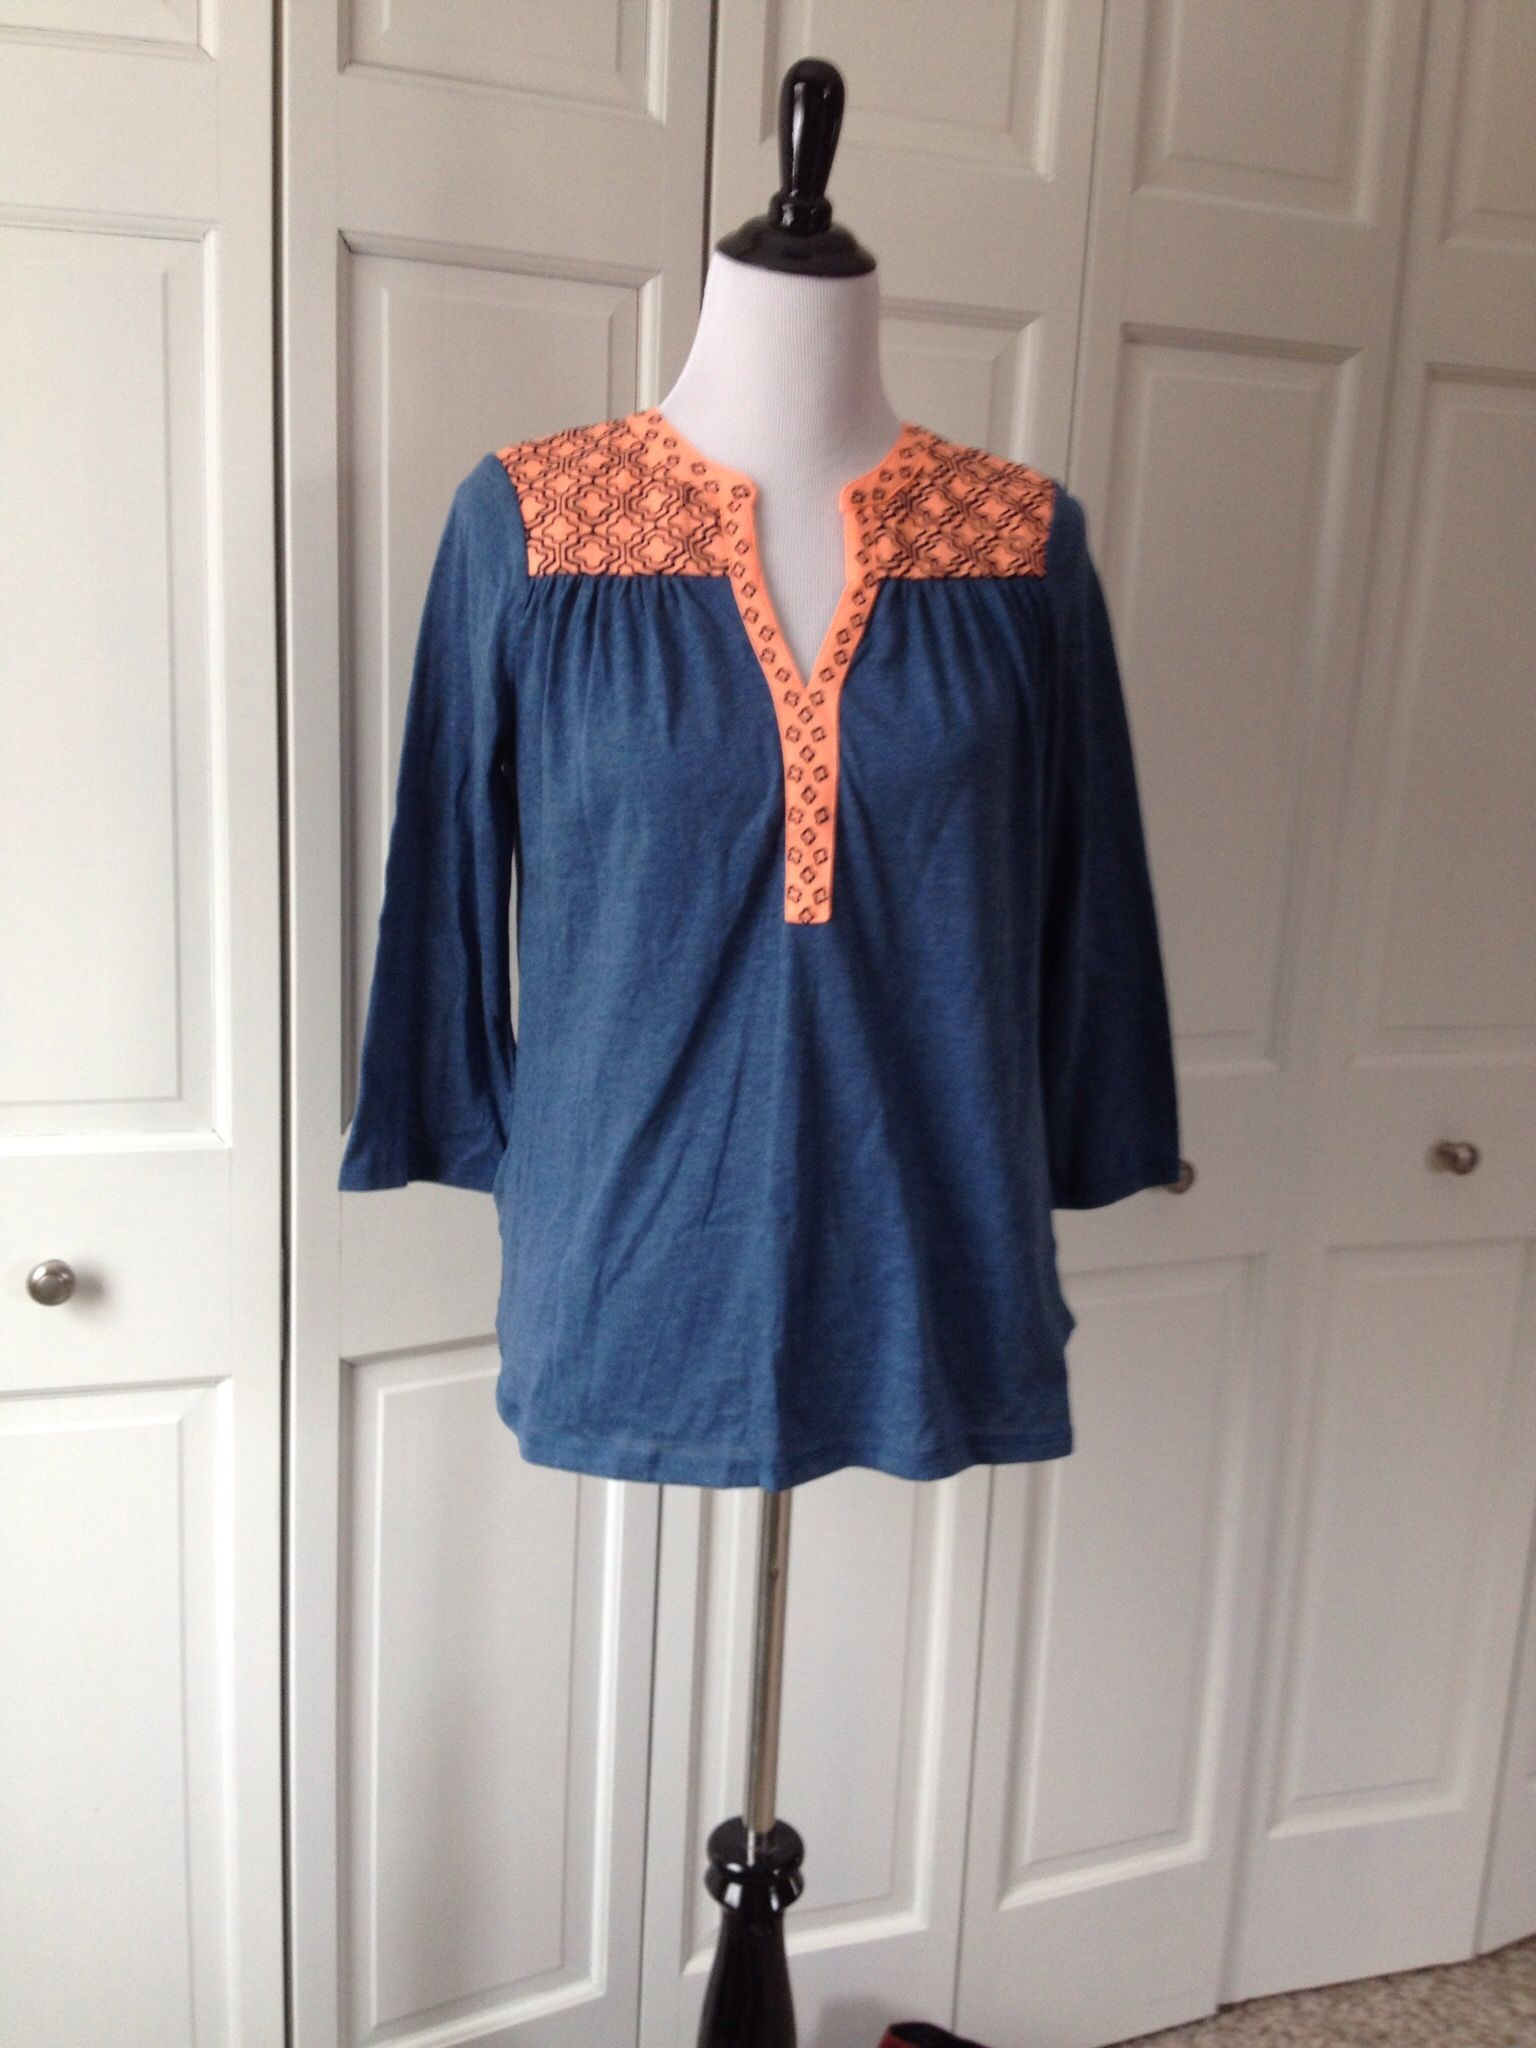 4102e83fe20 I don't usually like orange for me but these are my college colors. Pixley  Lucia Embroidered V-Neck Jersey Top $44